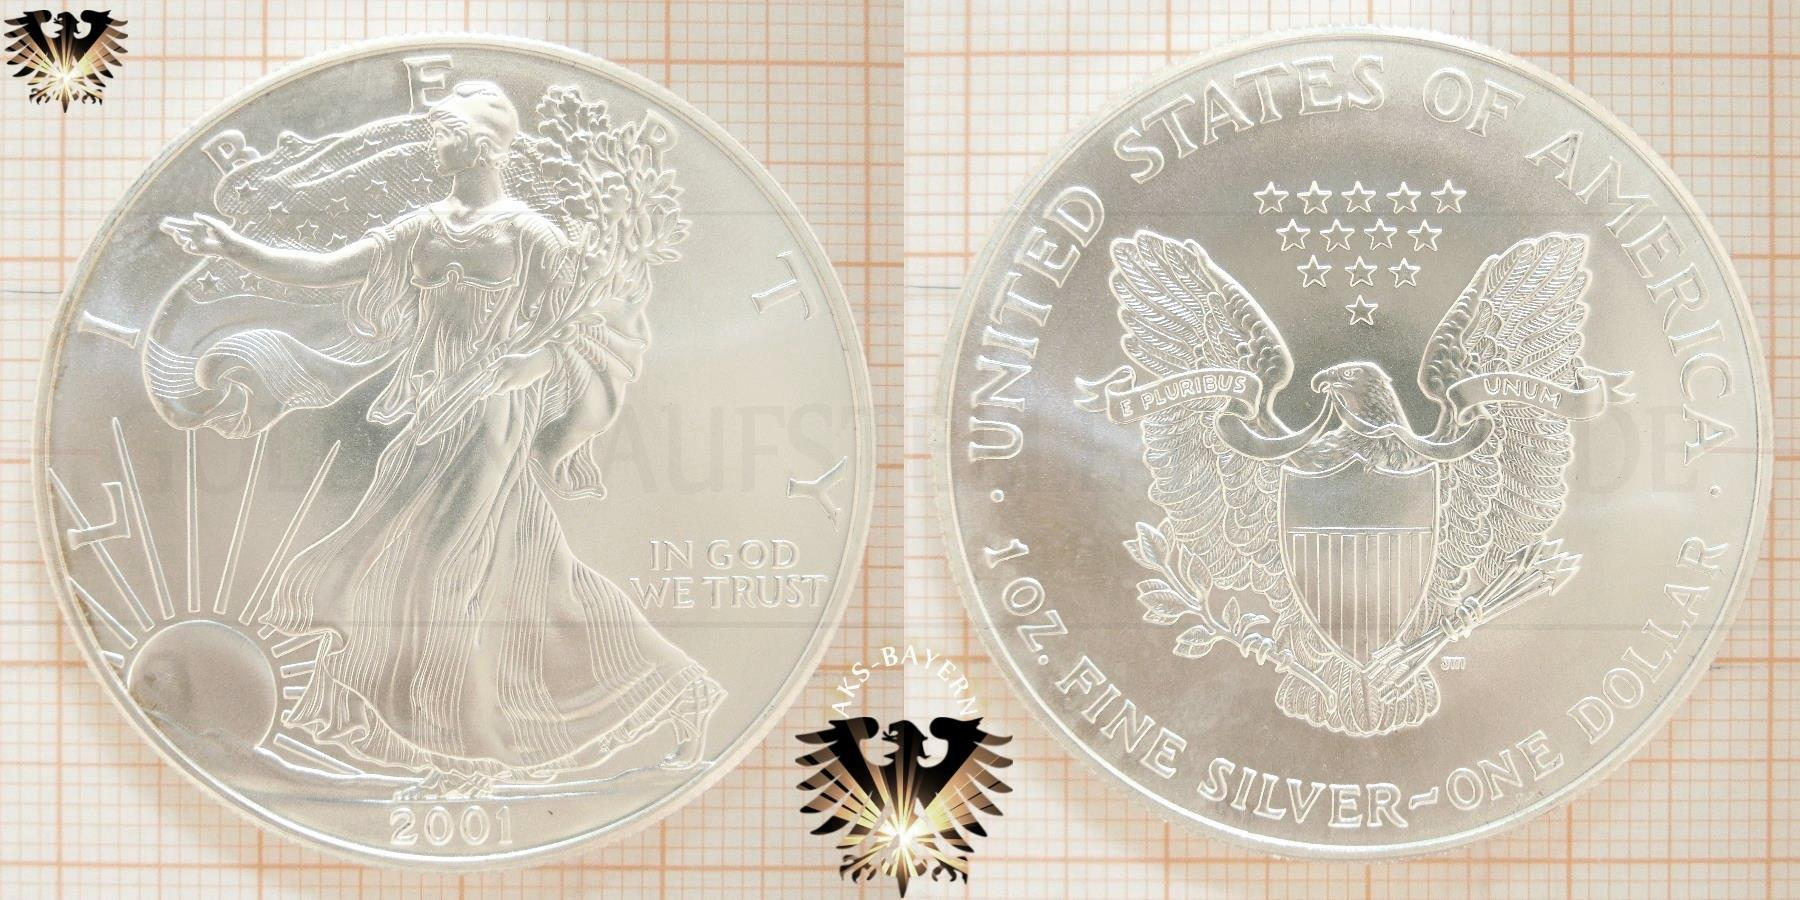 One Dollar Liberty Silver Eagle Usa Y2k Bullionm 252 Nzen